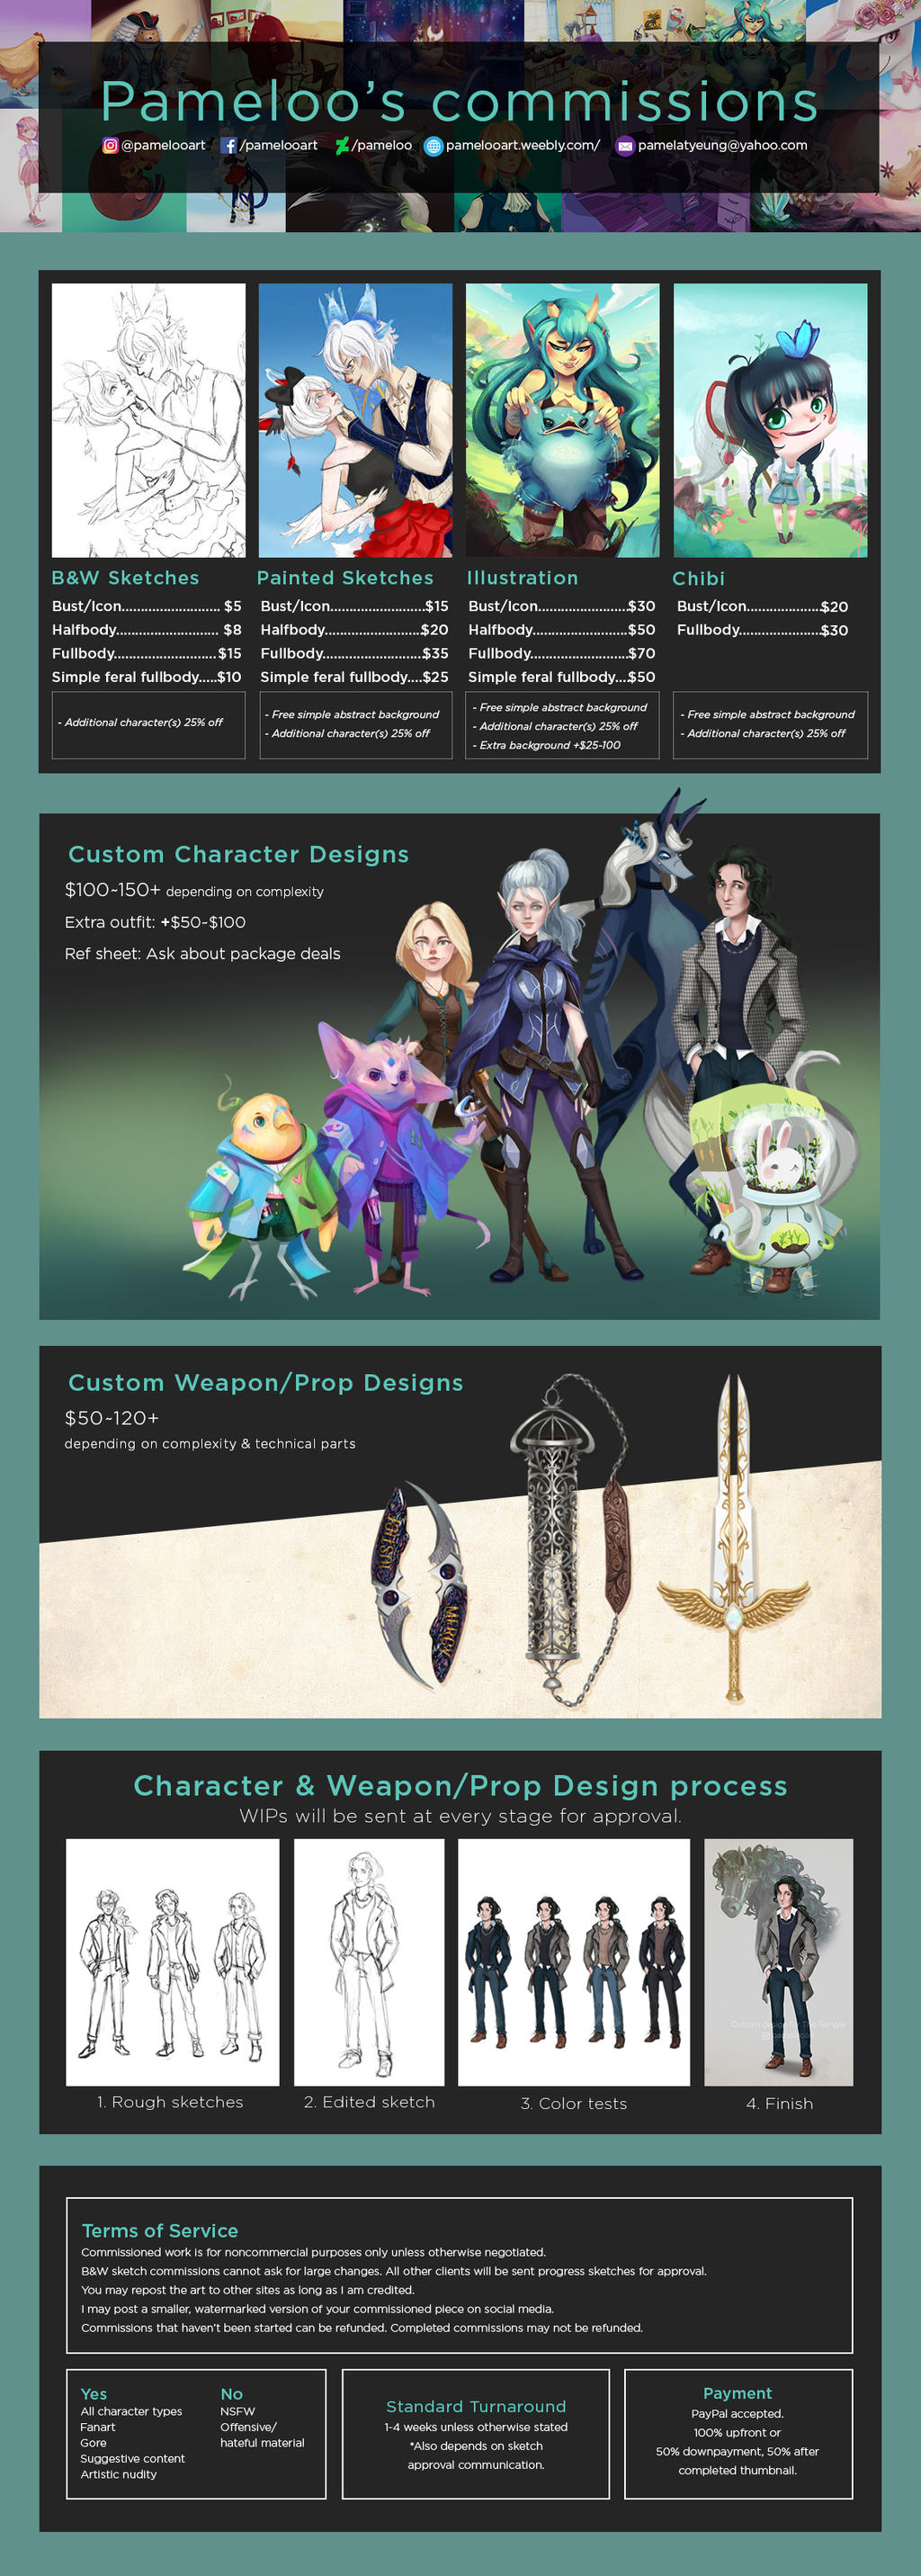 commission_sheet_2019_by_pameloo_dcyfo4s-fullview.jpg